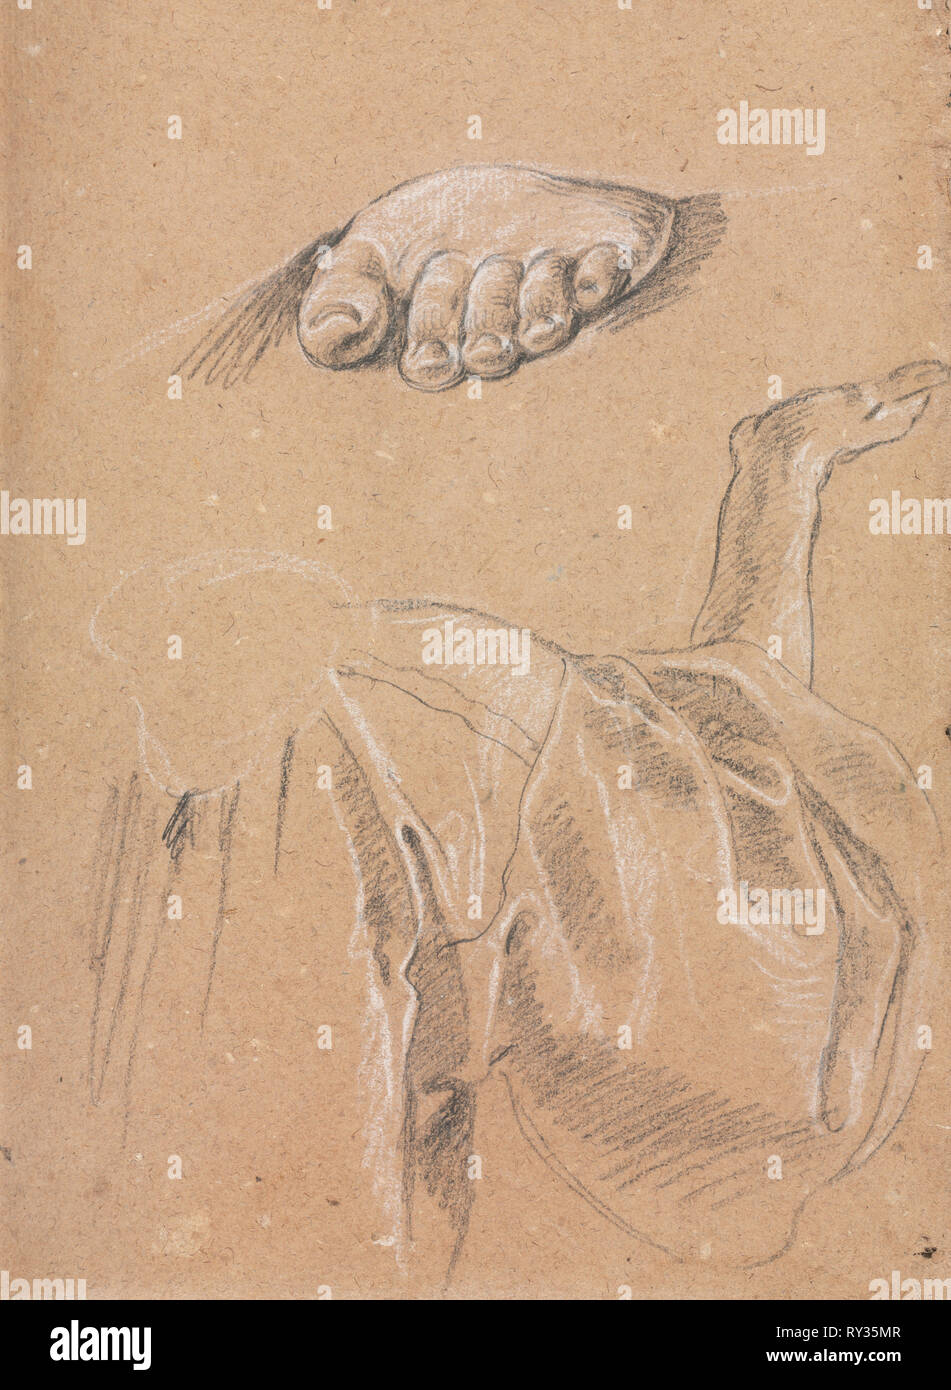 Verona Sketchbook: Study of a left foot and drapery study with right arm (page 79), 1760. Francesco Lorenzi (Italian, 1723-1787). Black chalk with white heightening ; sheet: 32 x 23 cm (12 5/8 x 9 1/16 in - Stock Image